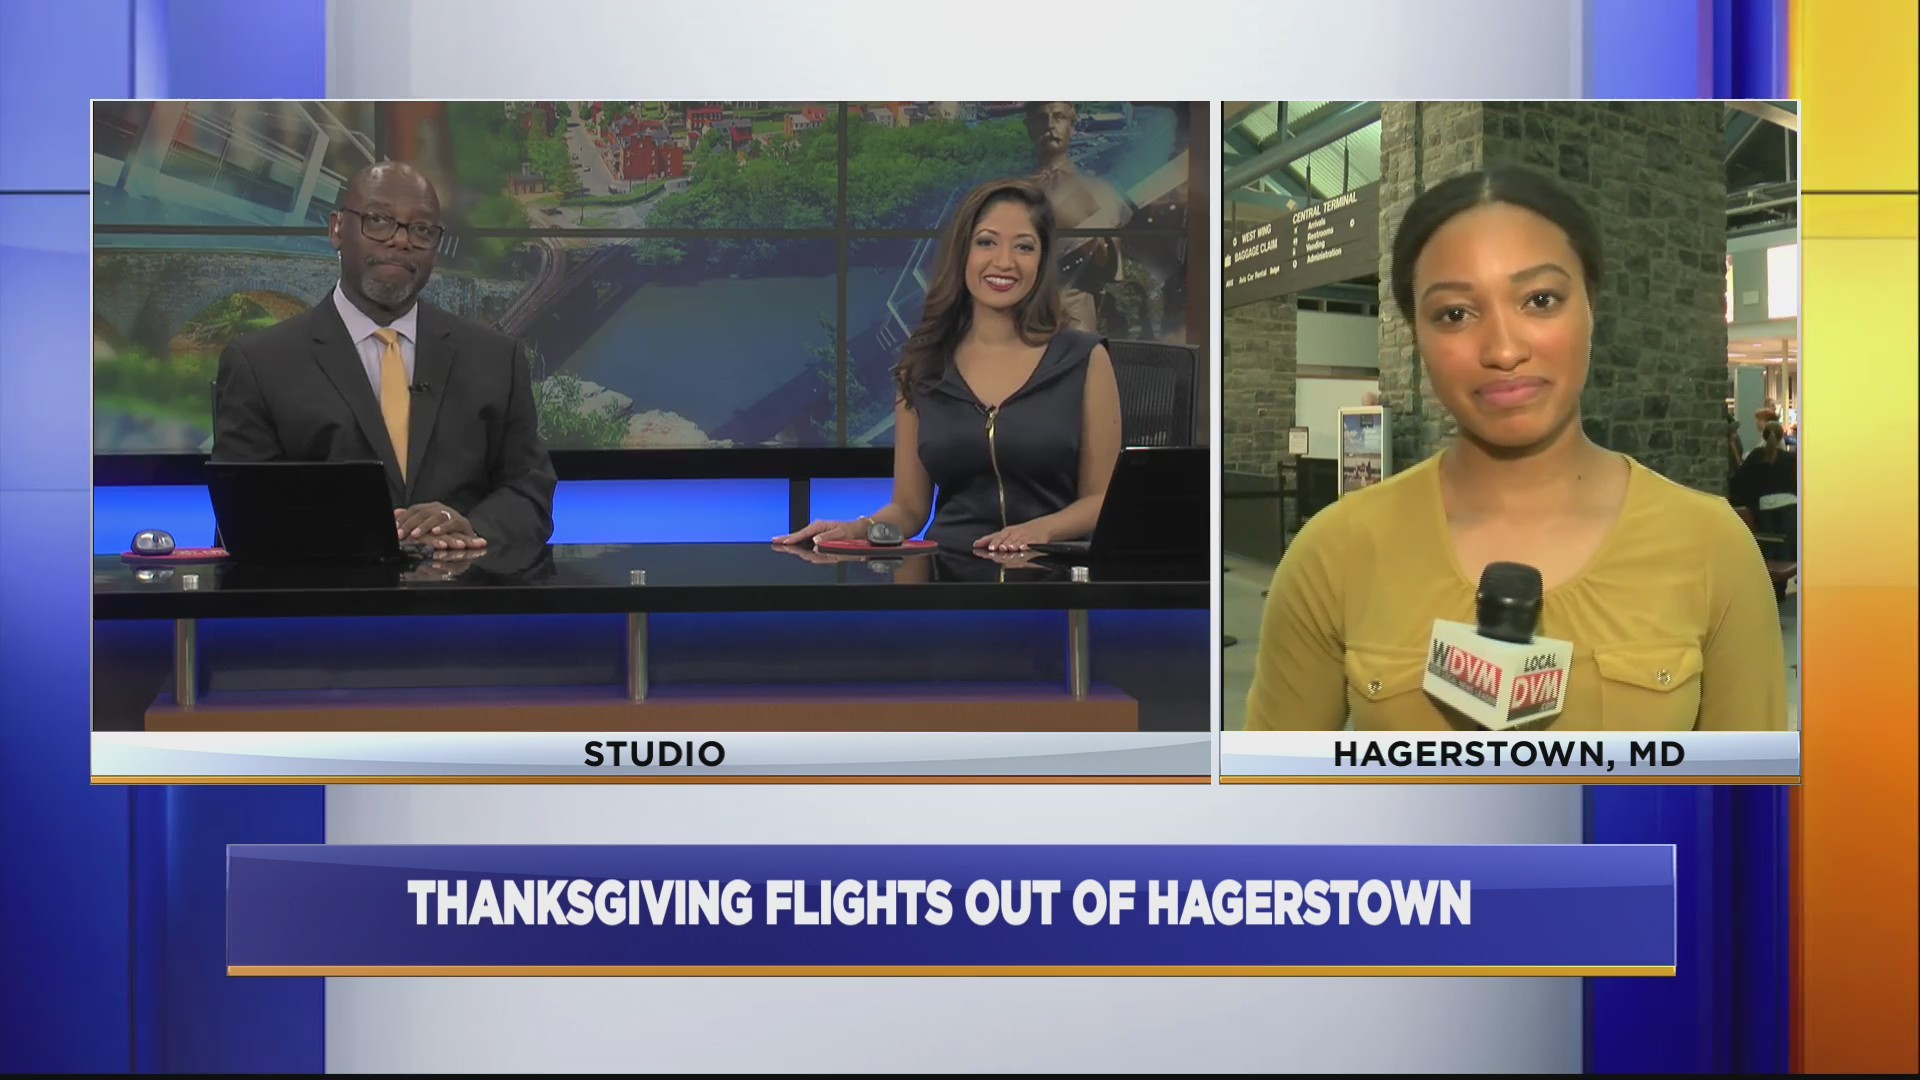 Aliah_live_from_Hagerstown_airport_0_20181121234641